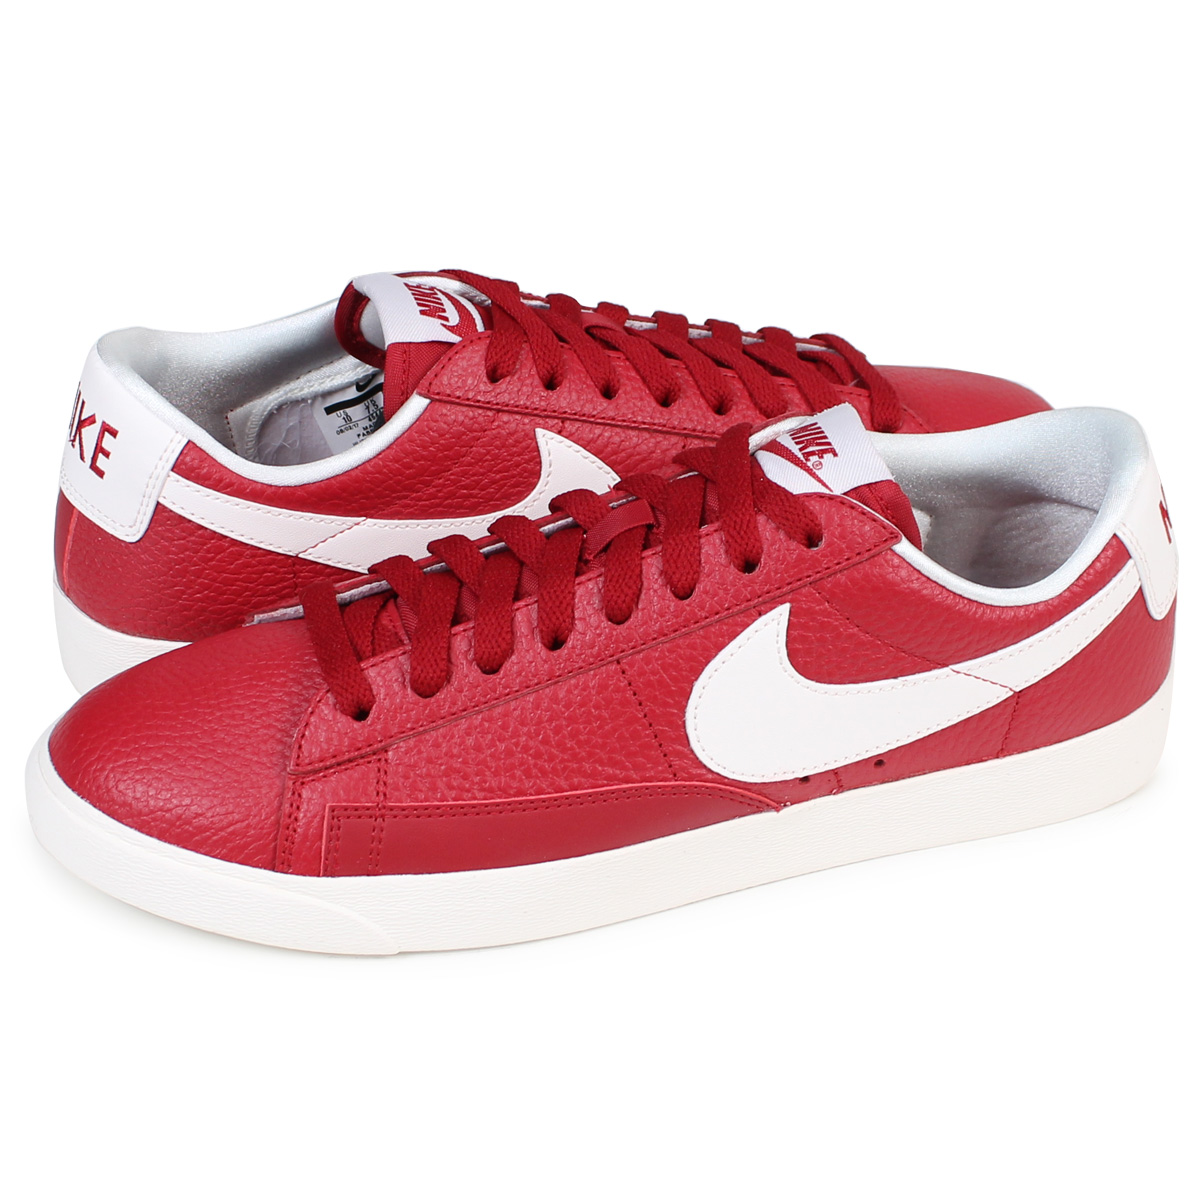 the best attitude 93c74 237c2 NIKE WMNS BLAZER LOW PREMIUM Nike blazer Lady s sneakers 454,471-601 men s  shoes red ...